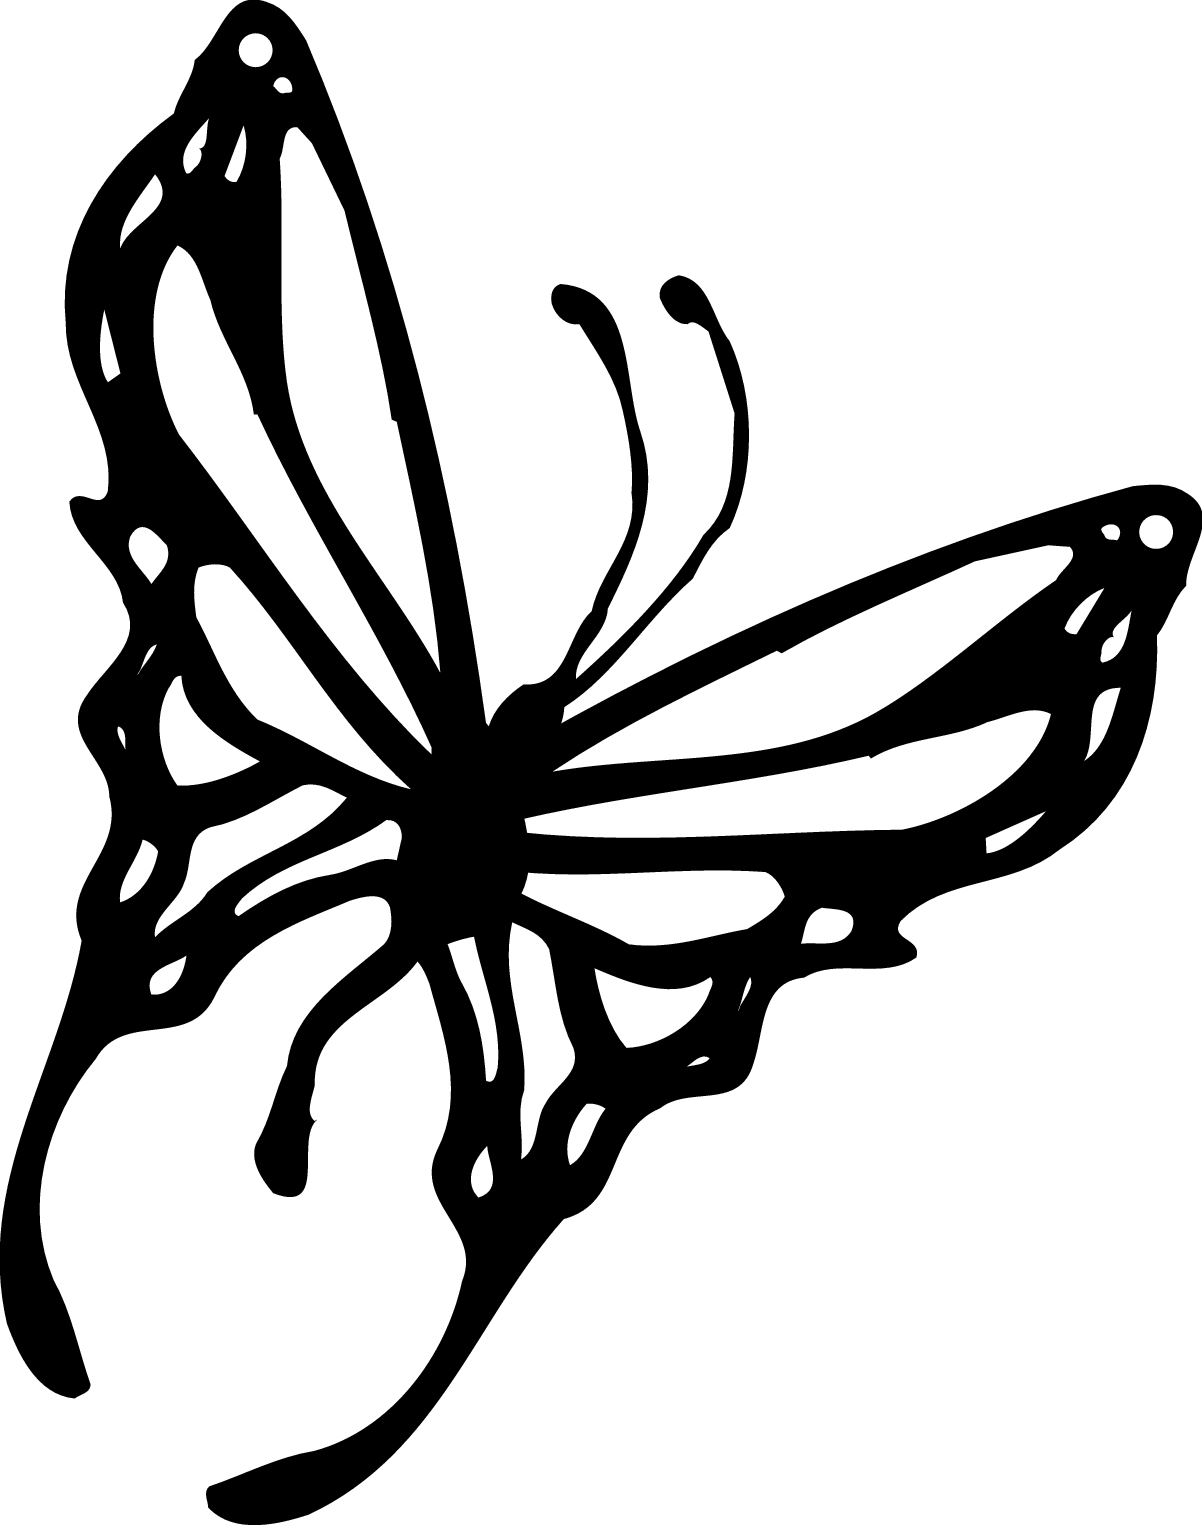 Free Butterfly Outline Clipart Download Free Clip Art Free Clip Art On Clipart Library